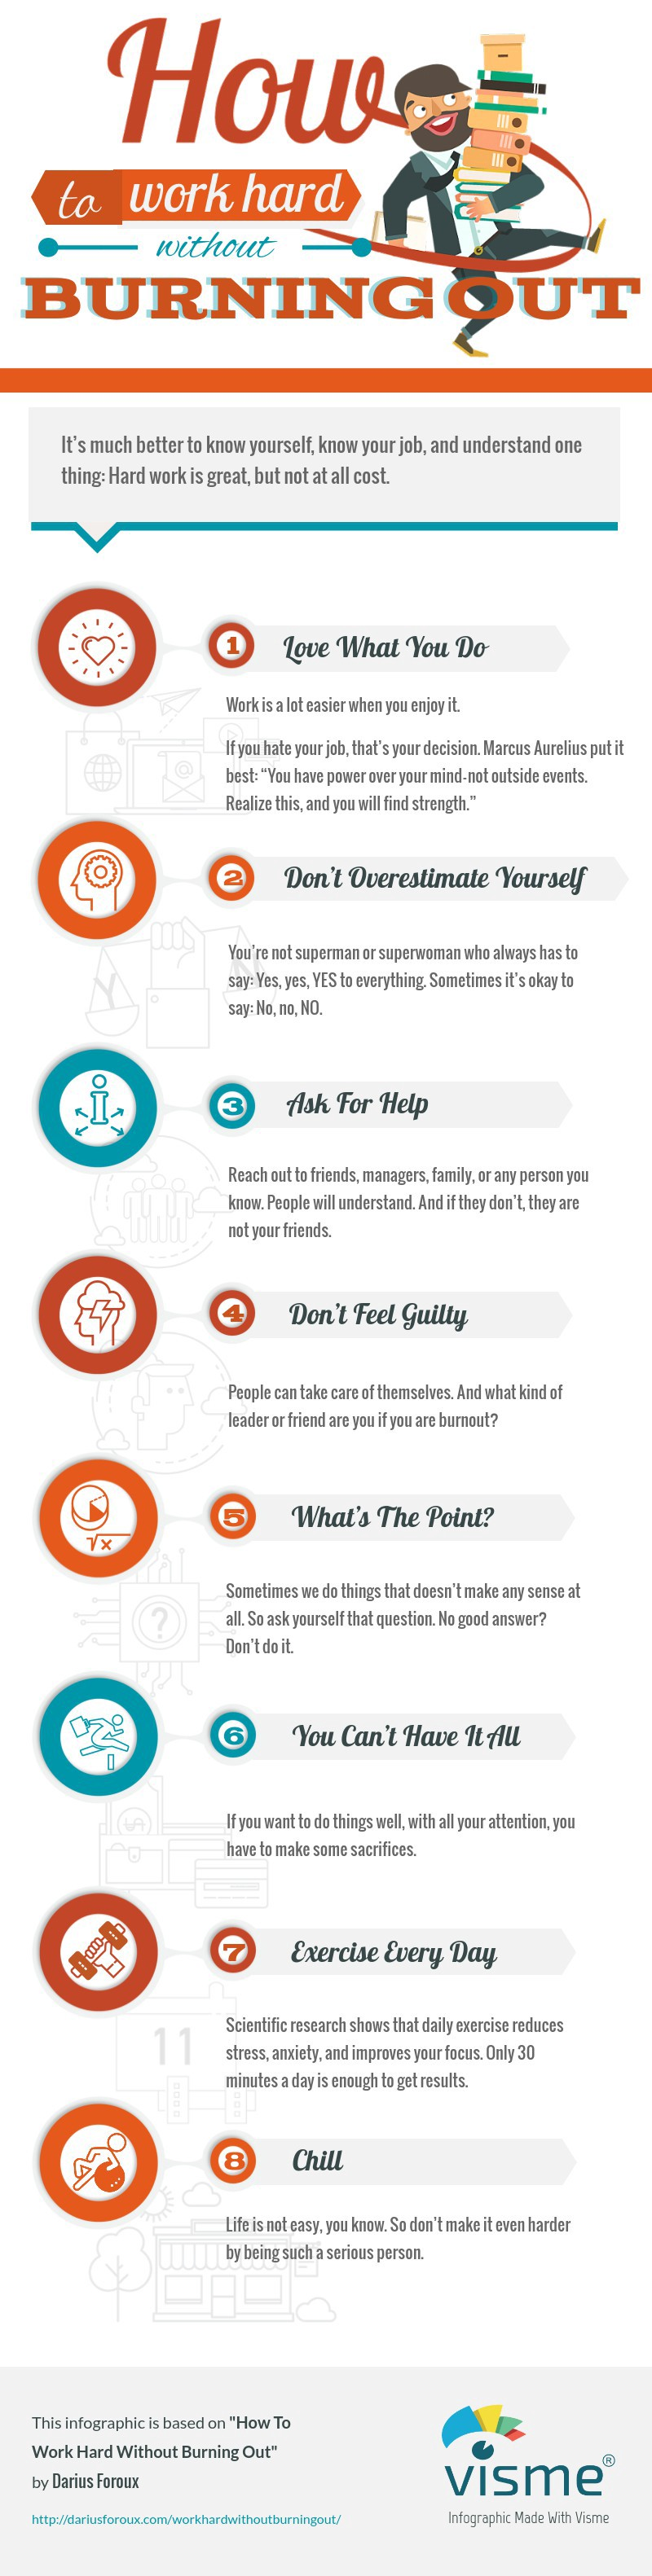 How To Work Hard Without Burning Out (infographic)